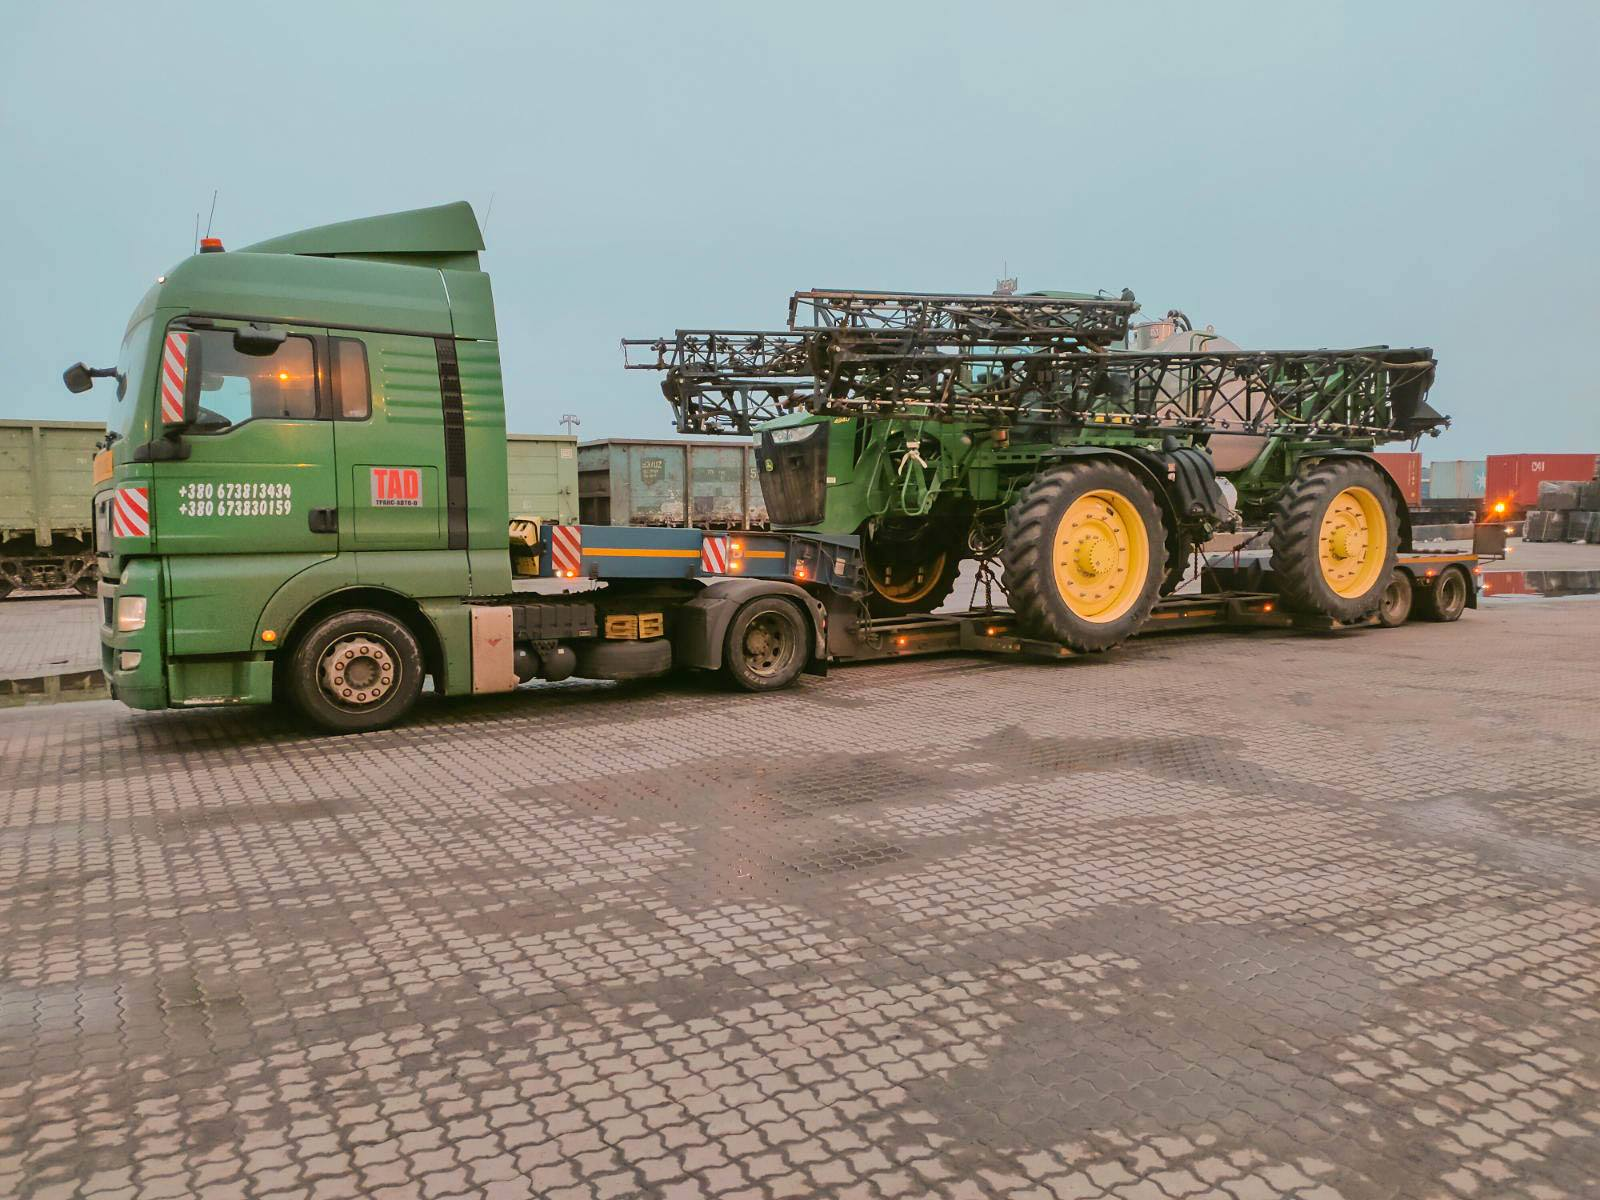 Transportation of the #JohnDeere4940 sprayer across Ukraine